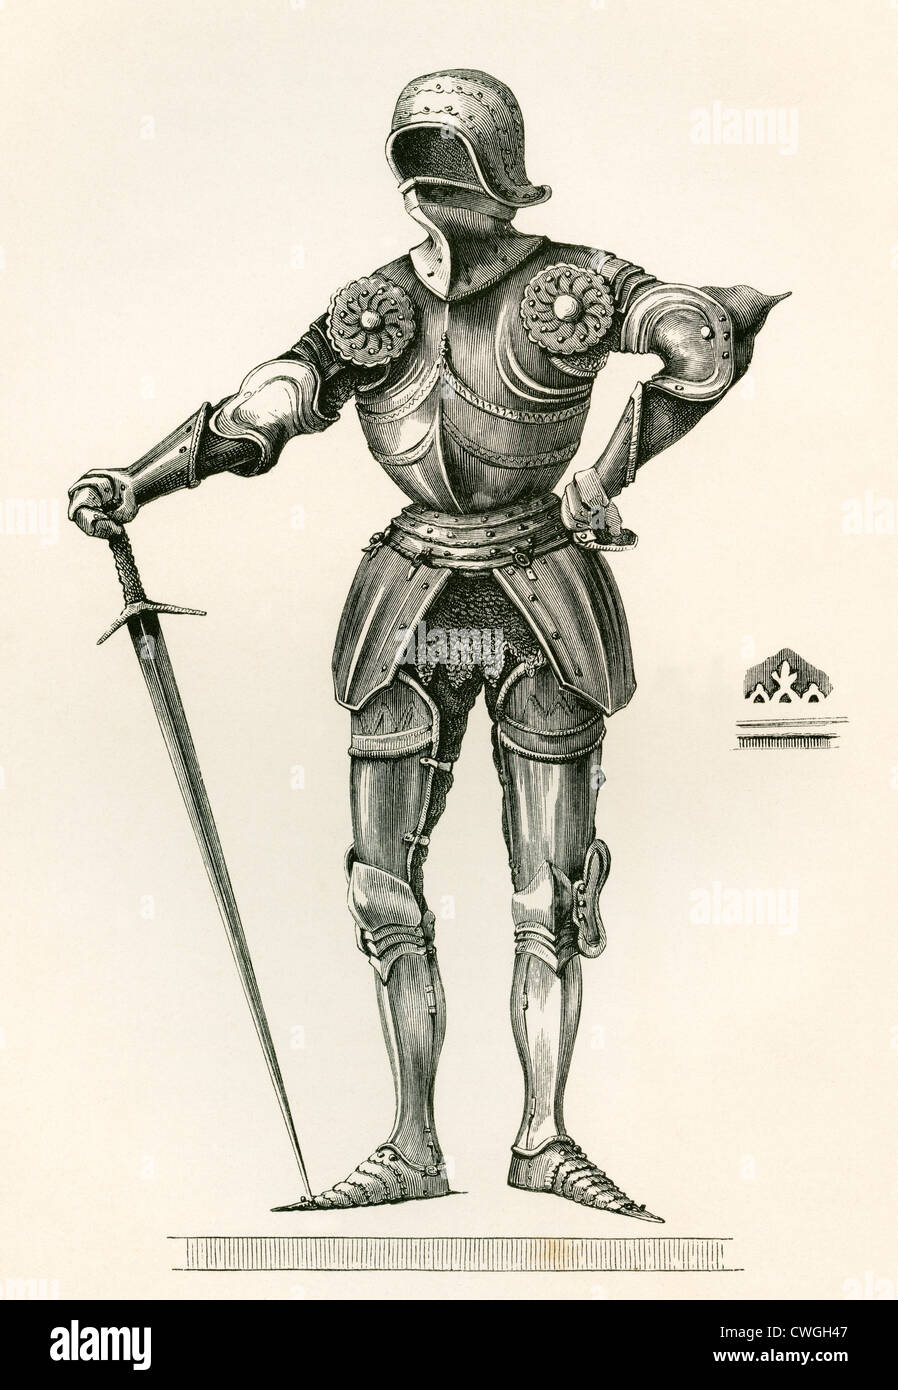 Suit of Gothic Armour, known as á la Poulaine, dating from A.D. 1450. - Stock Image